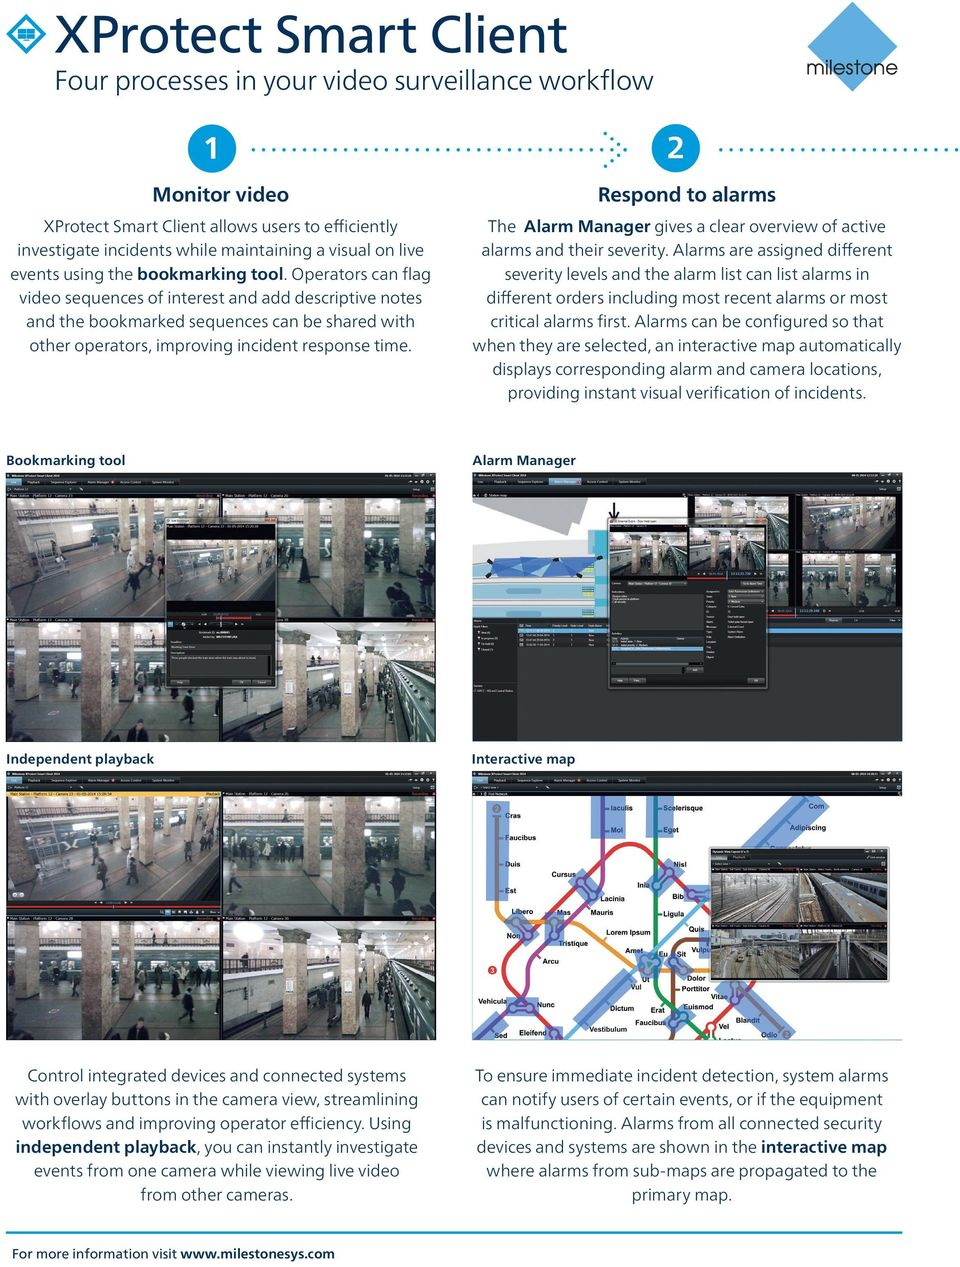 Operators can flag video sequences of interest and add descriptive notes and the bookmarked sequences can be shared with other operators, improving incident response time.